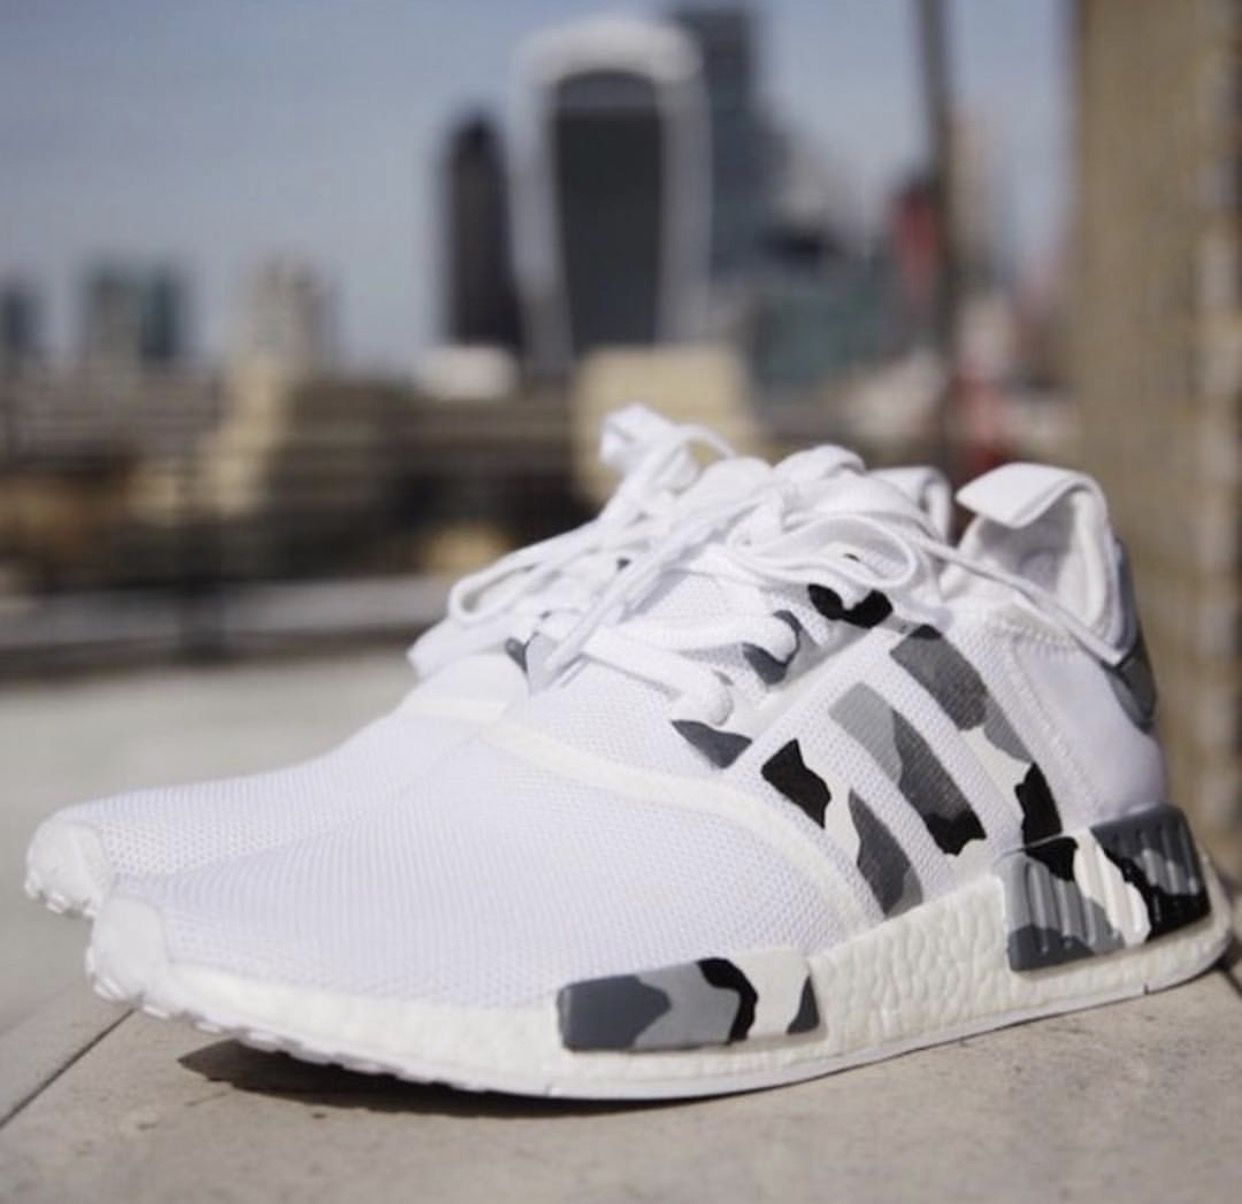 adidasfashion on Twitter. Adidas Nmd R1Adidas SneakersAddidas ...